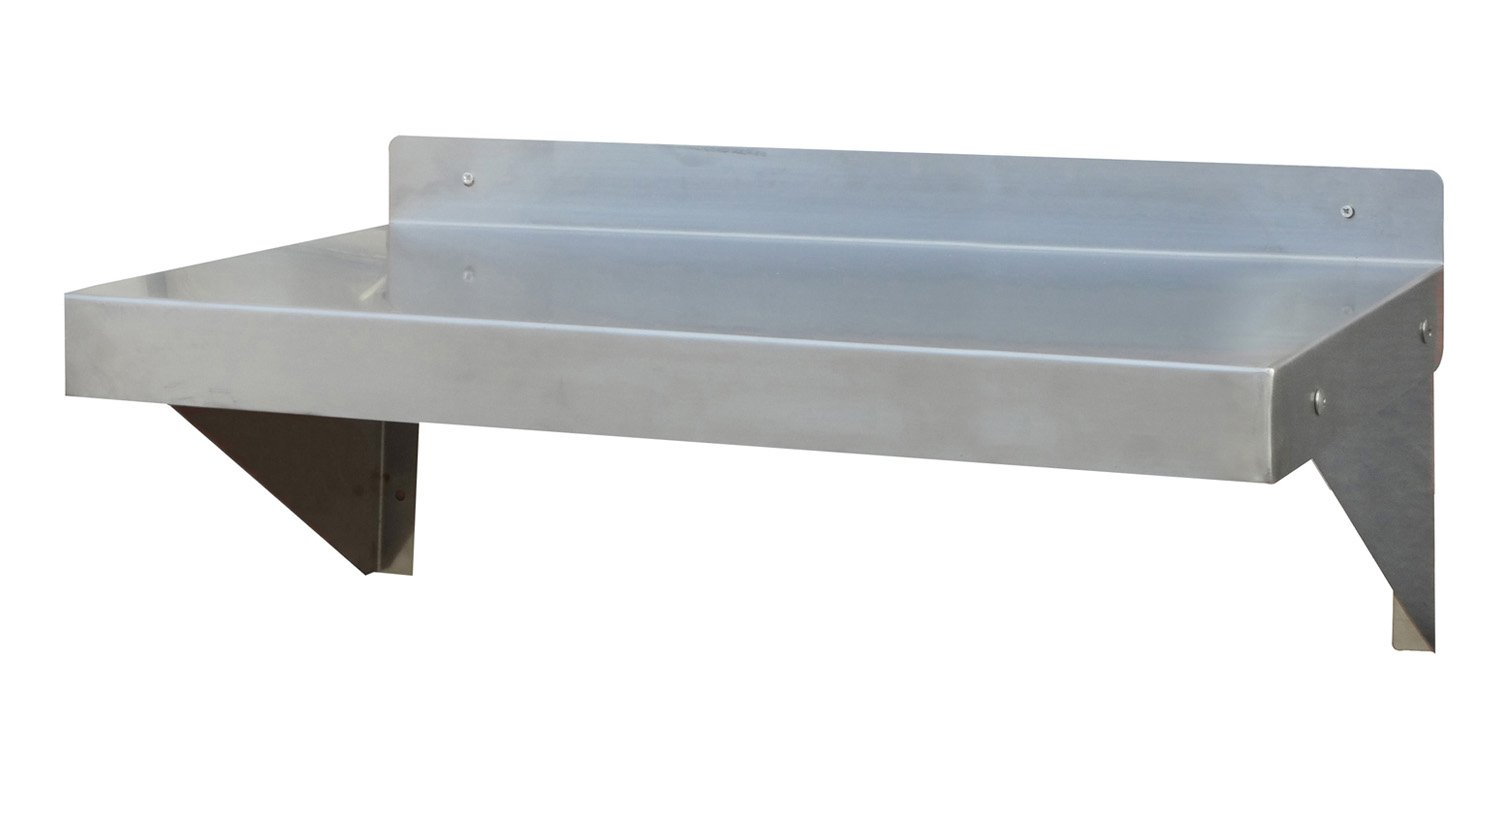 Offex 24'' Brushed Stainless Steel Finish Work Shelf - Silver by offex (Image #1)